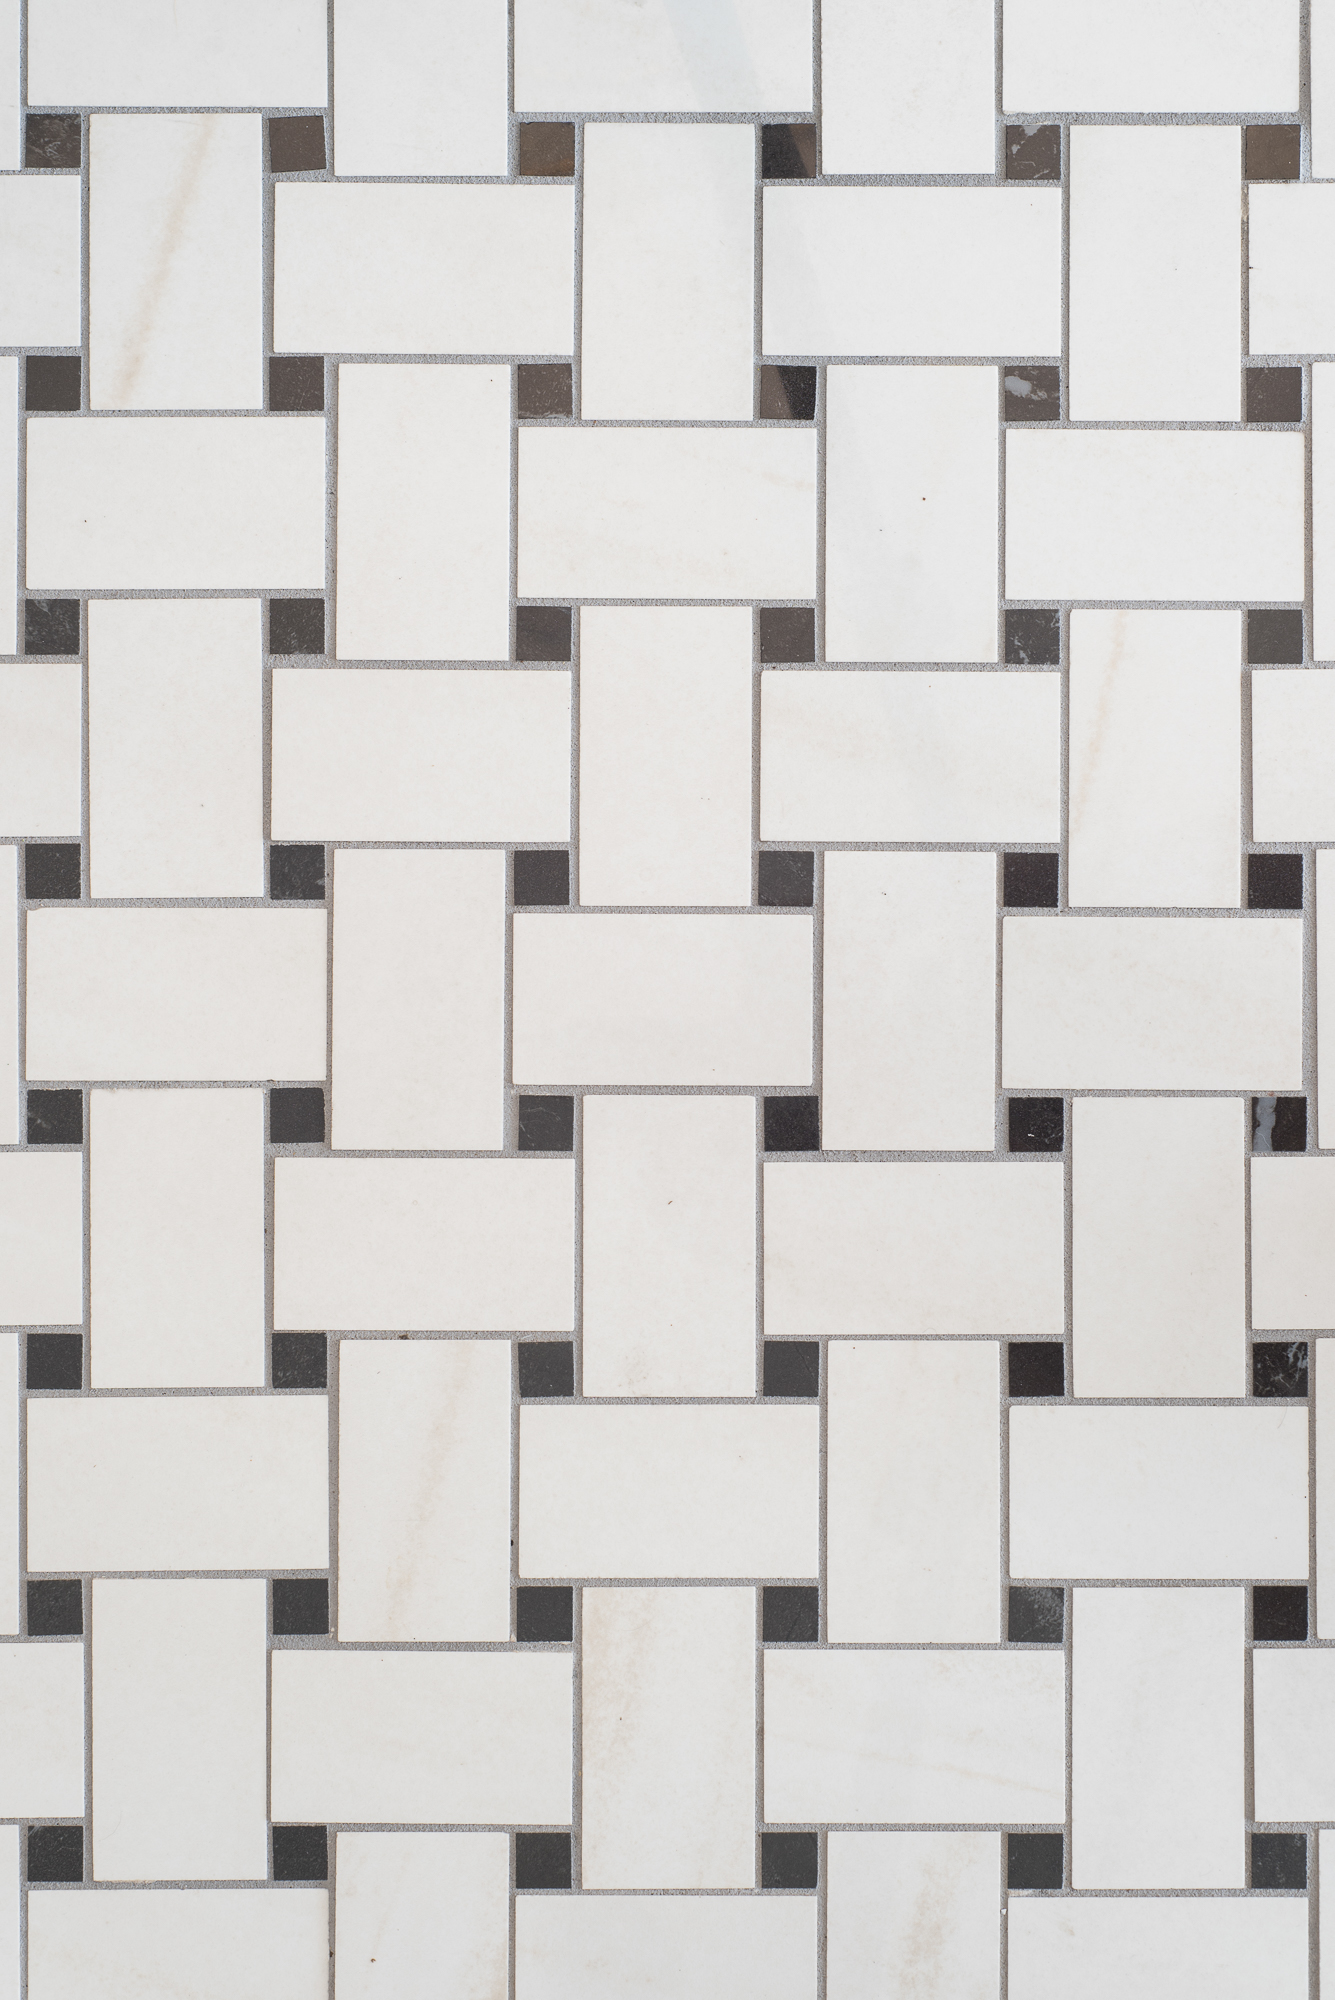 Micamy Design Studio_Interior Design_Clay Theatre_Event Space_Venue_Art Deco_Modern_Marble Floors_Deco Pattern_Bowtie_Tile Design_Black and White.jpg